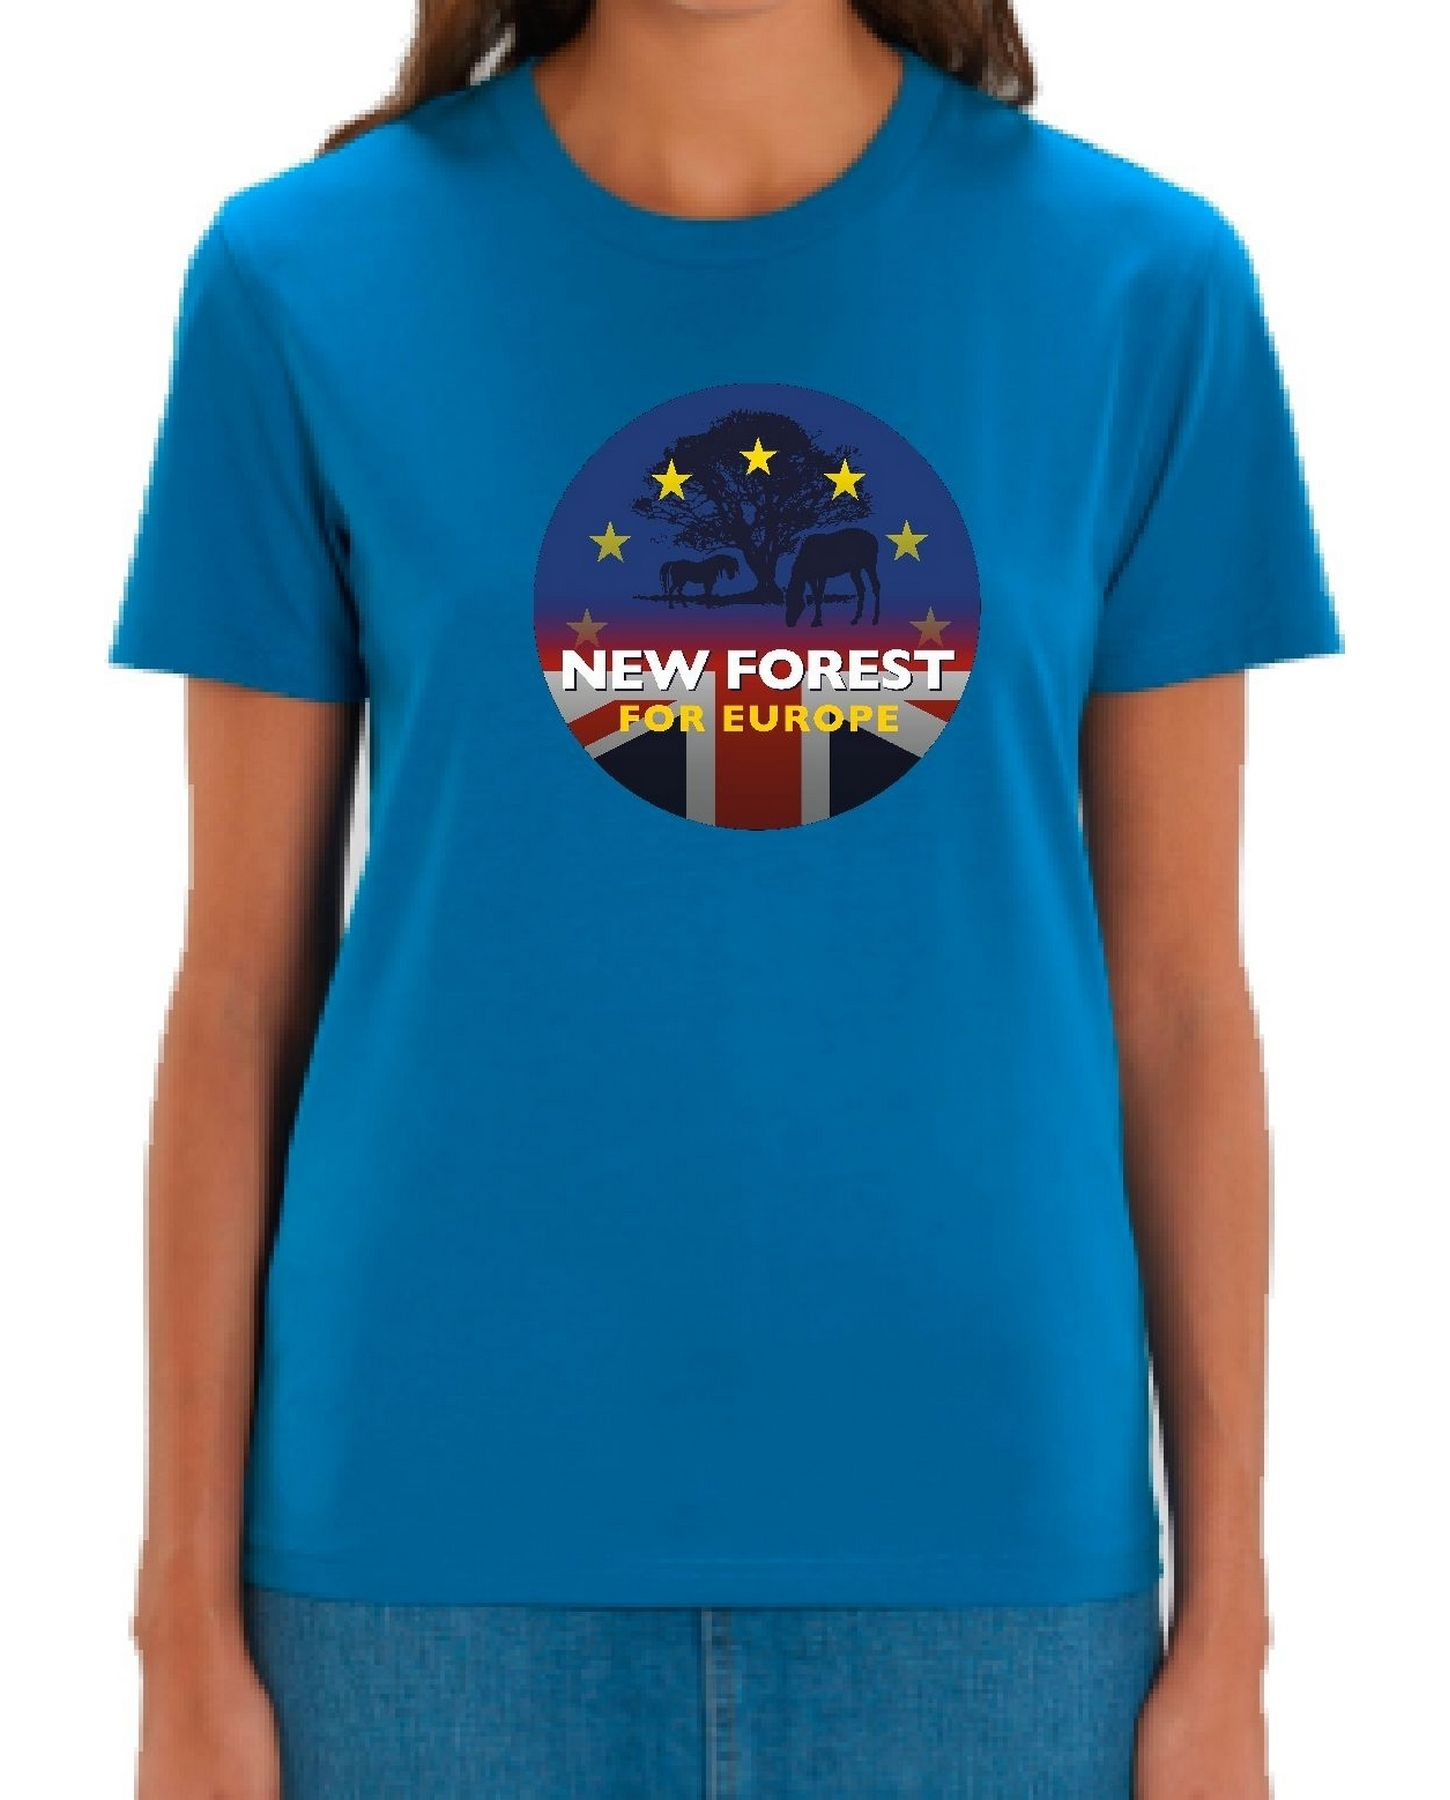 New Forest for Europe – Tee (Ladies)